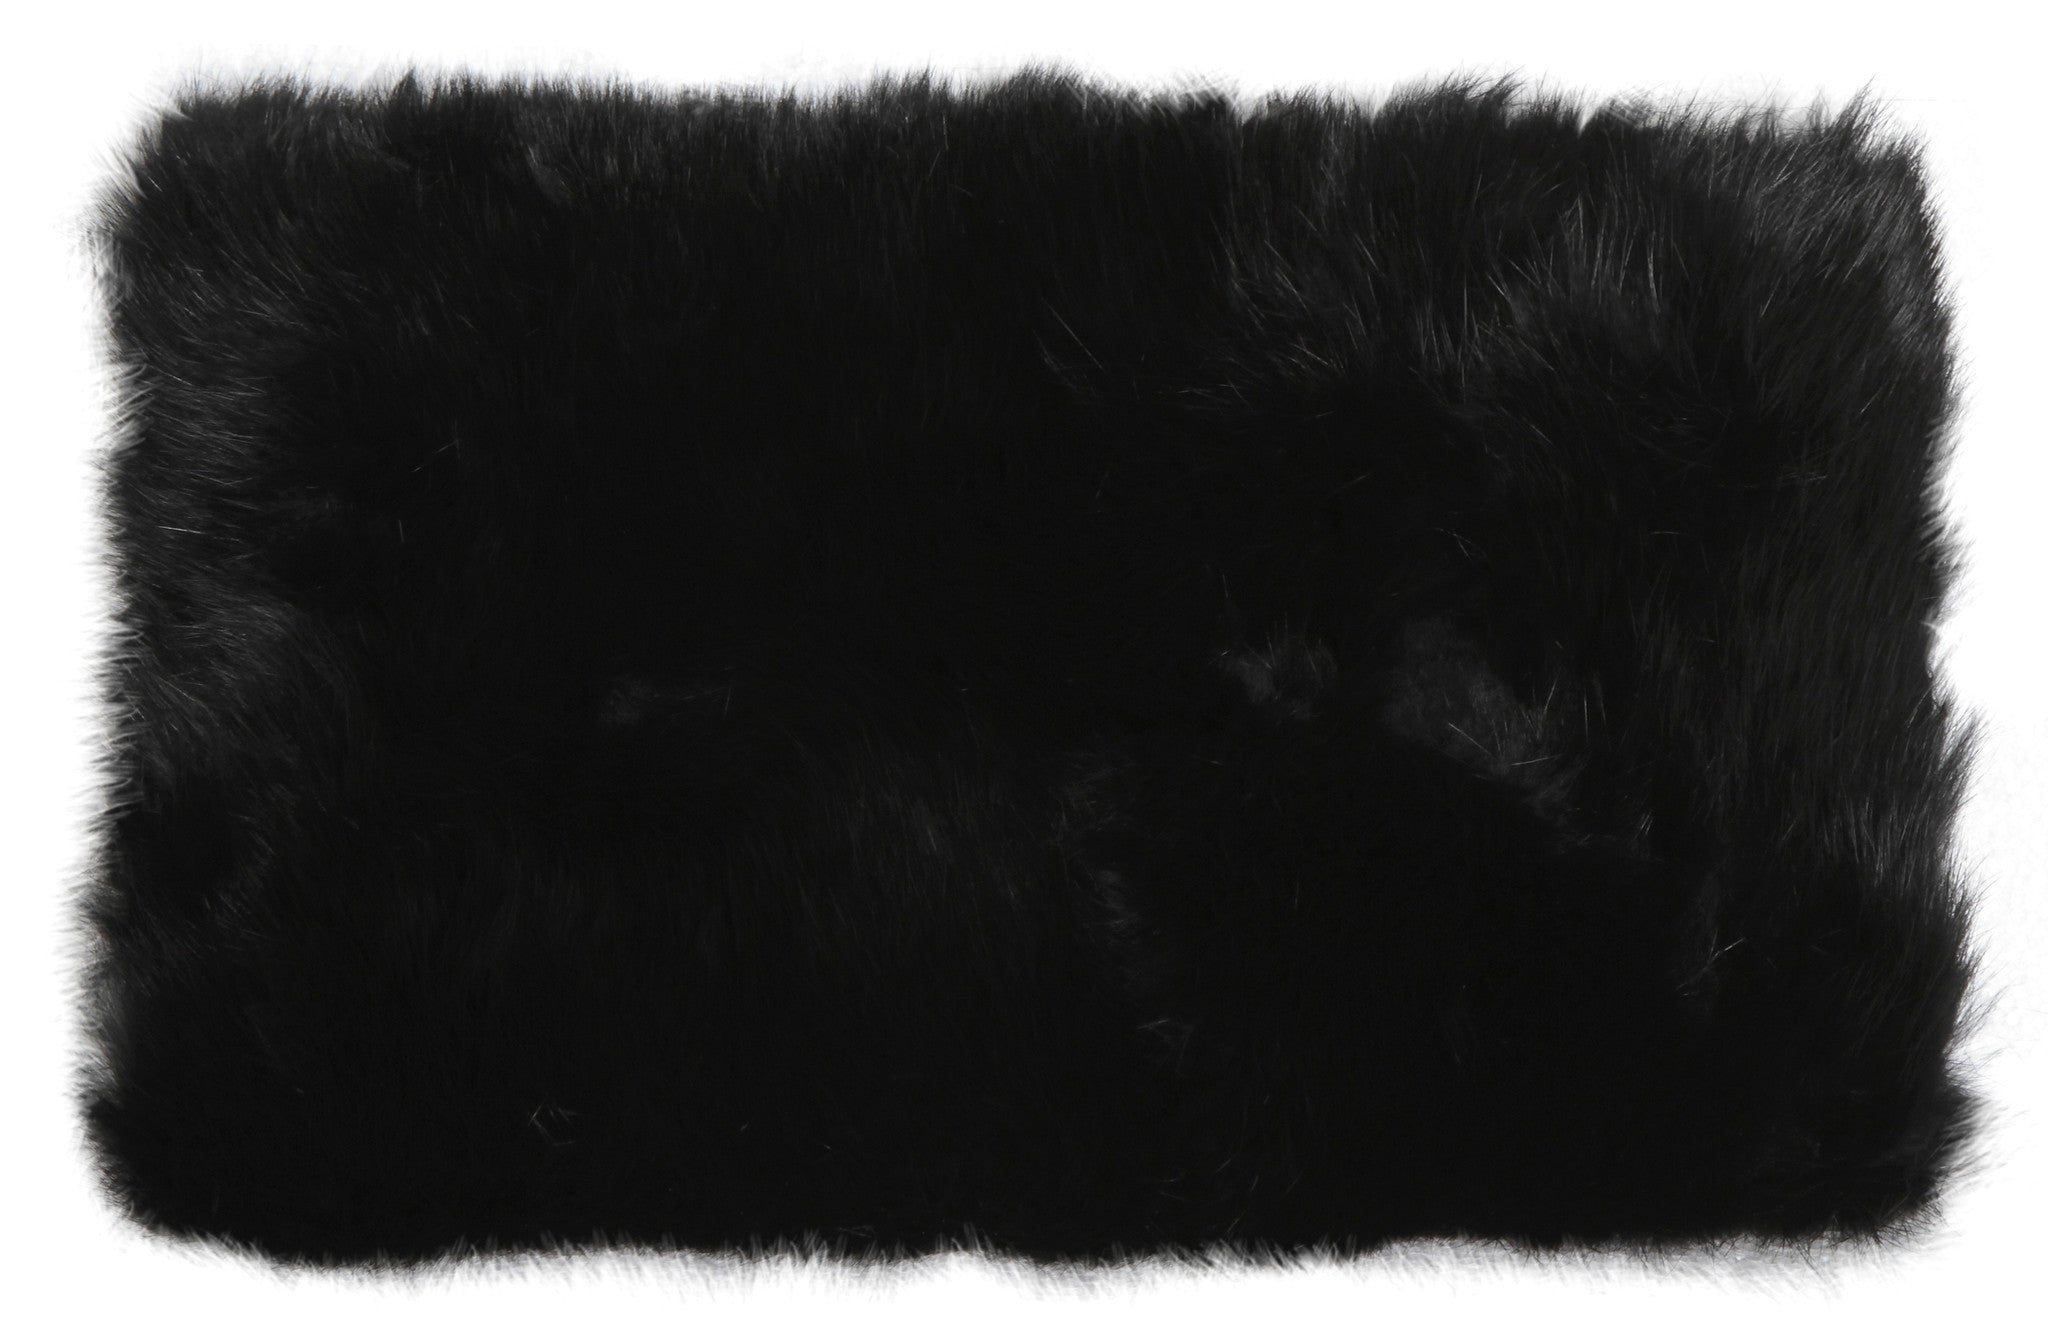 057b3e165c Faux Fur Clutch Bag - Style Skin